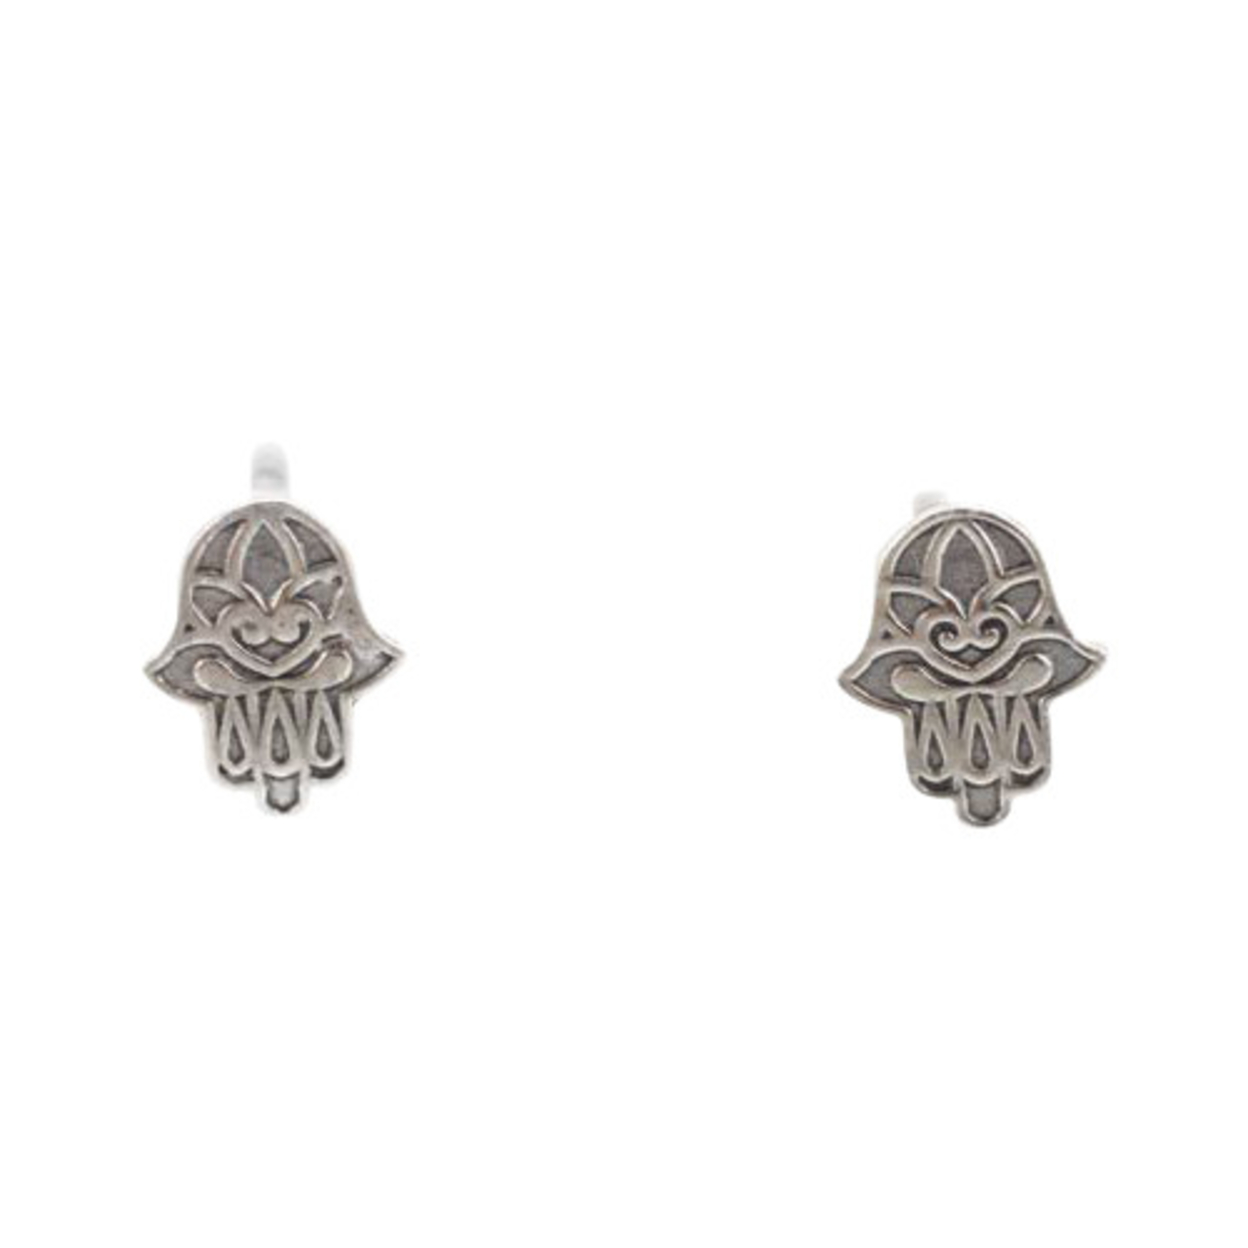 Tiny Decorative Hamsa Hand Post Earrings In Sterling Silver, #7432s